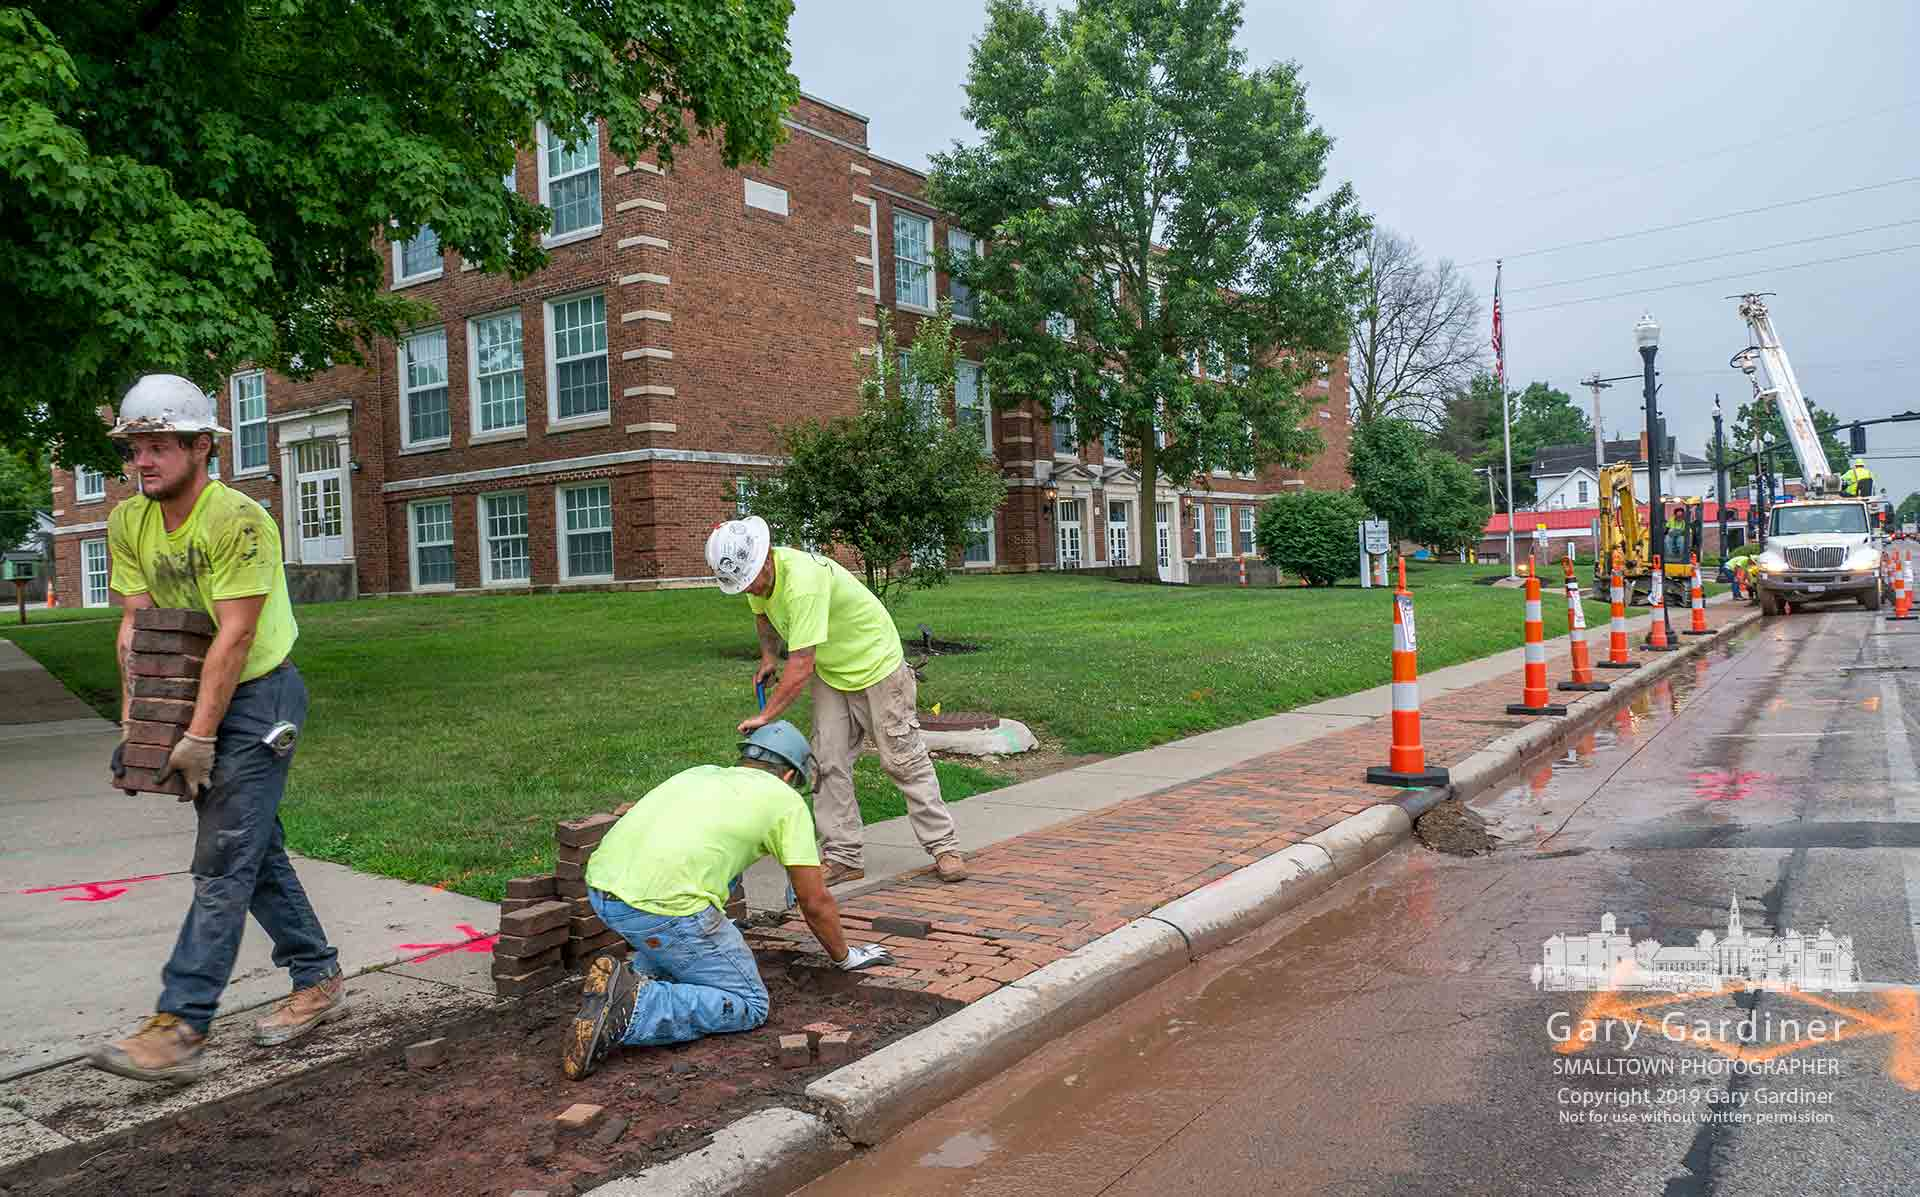 Workers for two contractors begin construction on the Uptown Streetscape Improvement project by removing bricks from the sidewalk, cutting away about a foot of asphalt roadway, and removing streetlights in front of Hanby Elementary before rebuilding the sidewalks and expanding them about a foot into State Street before school starts August 13. My Final Photo for July 22, 2019.